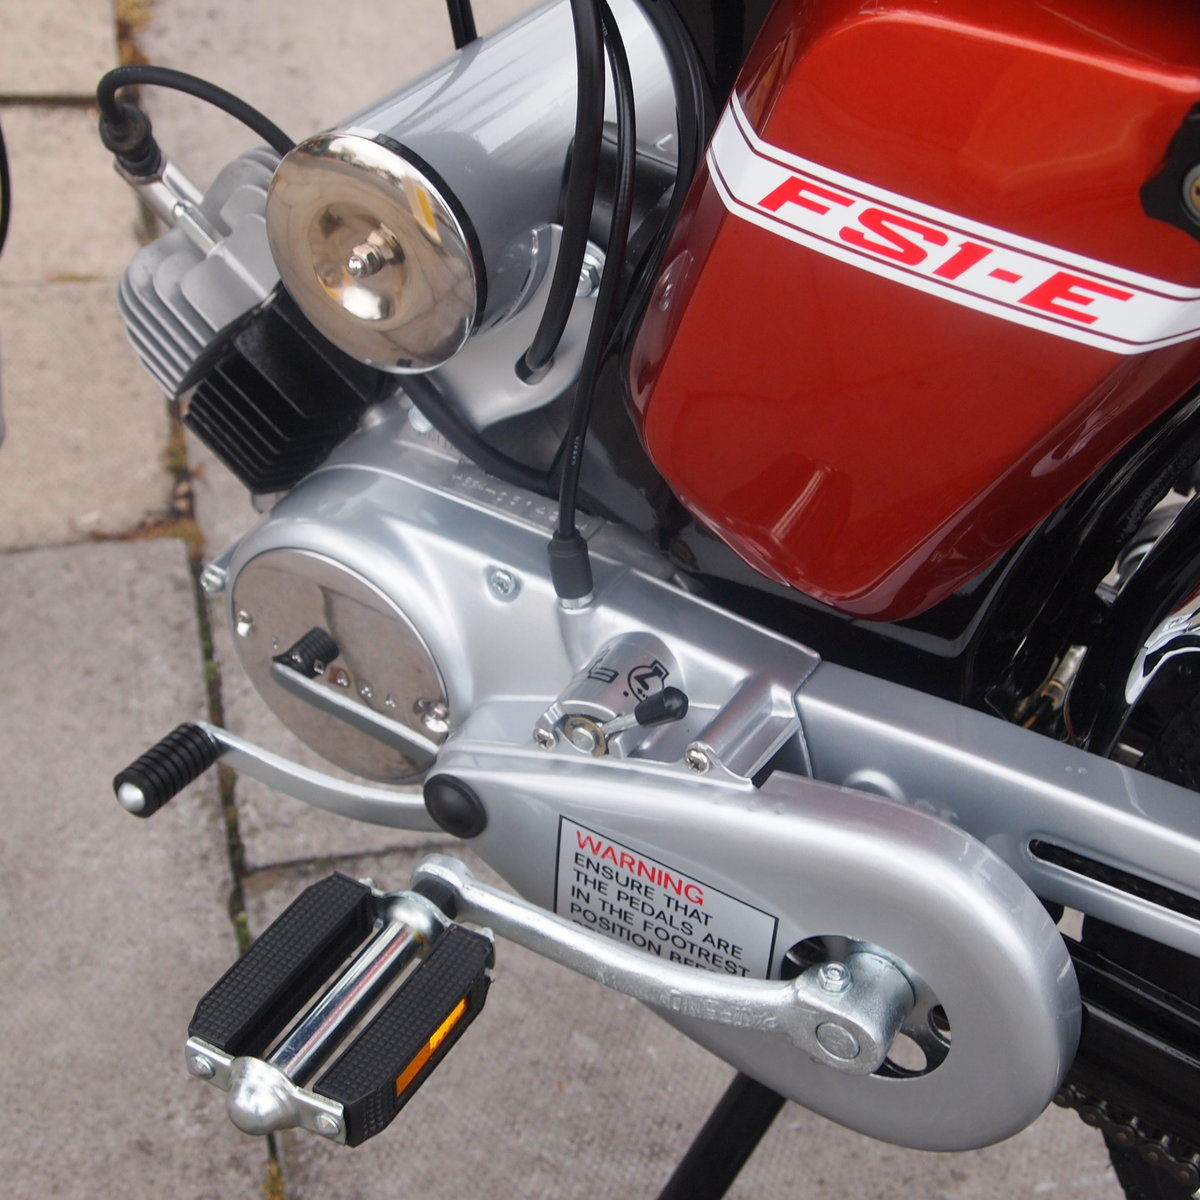 1975 Yamaha FS1E Genuine Rare UK Pedal Moped, Like New. For Sale (picture 2 of 6)